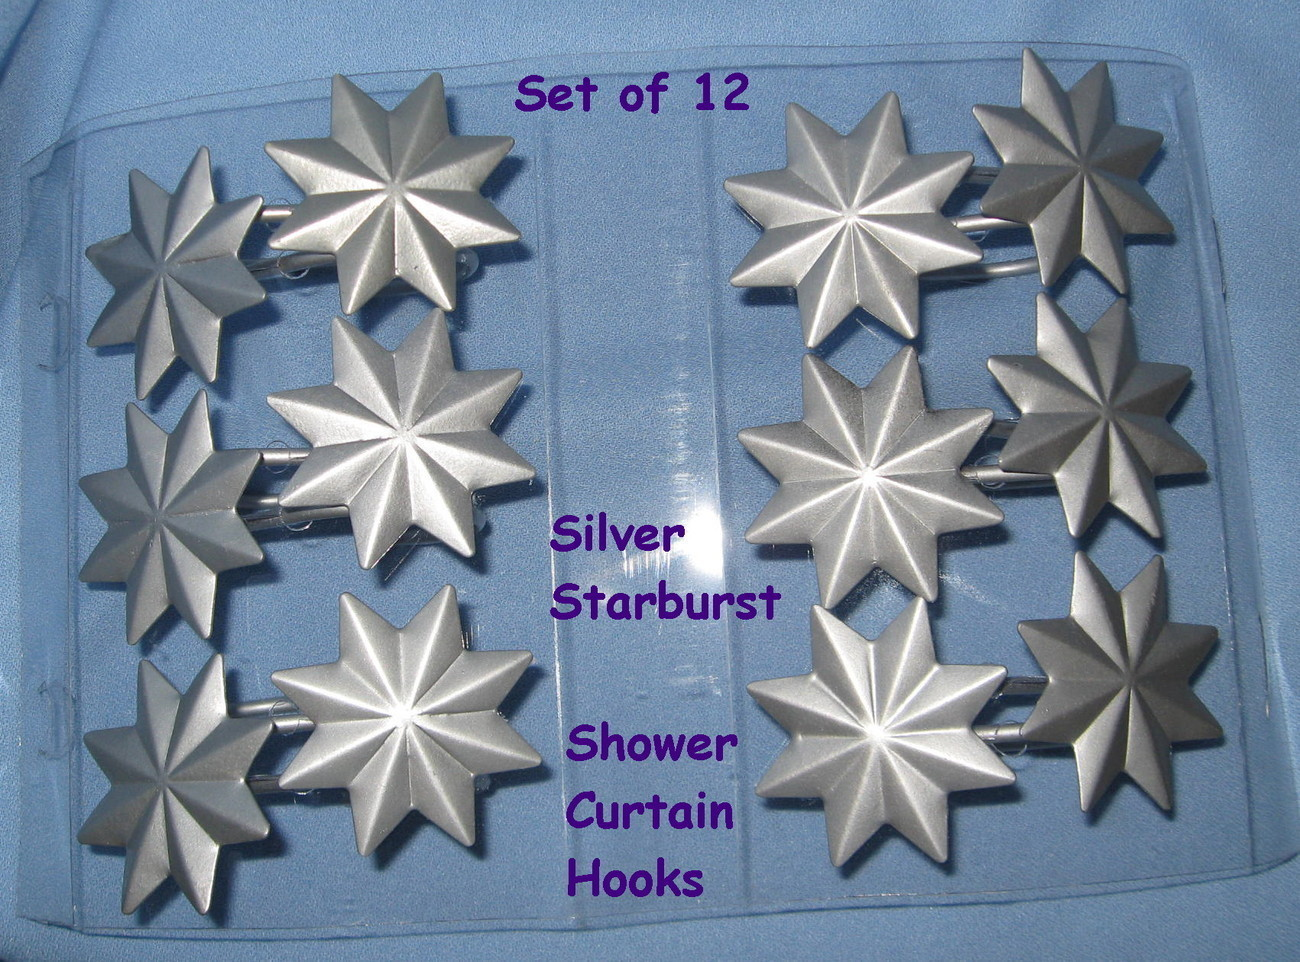 Shower curtain hooks set 12 matte silver metal starburst star